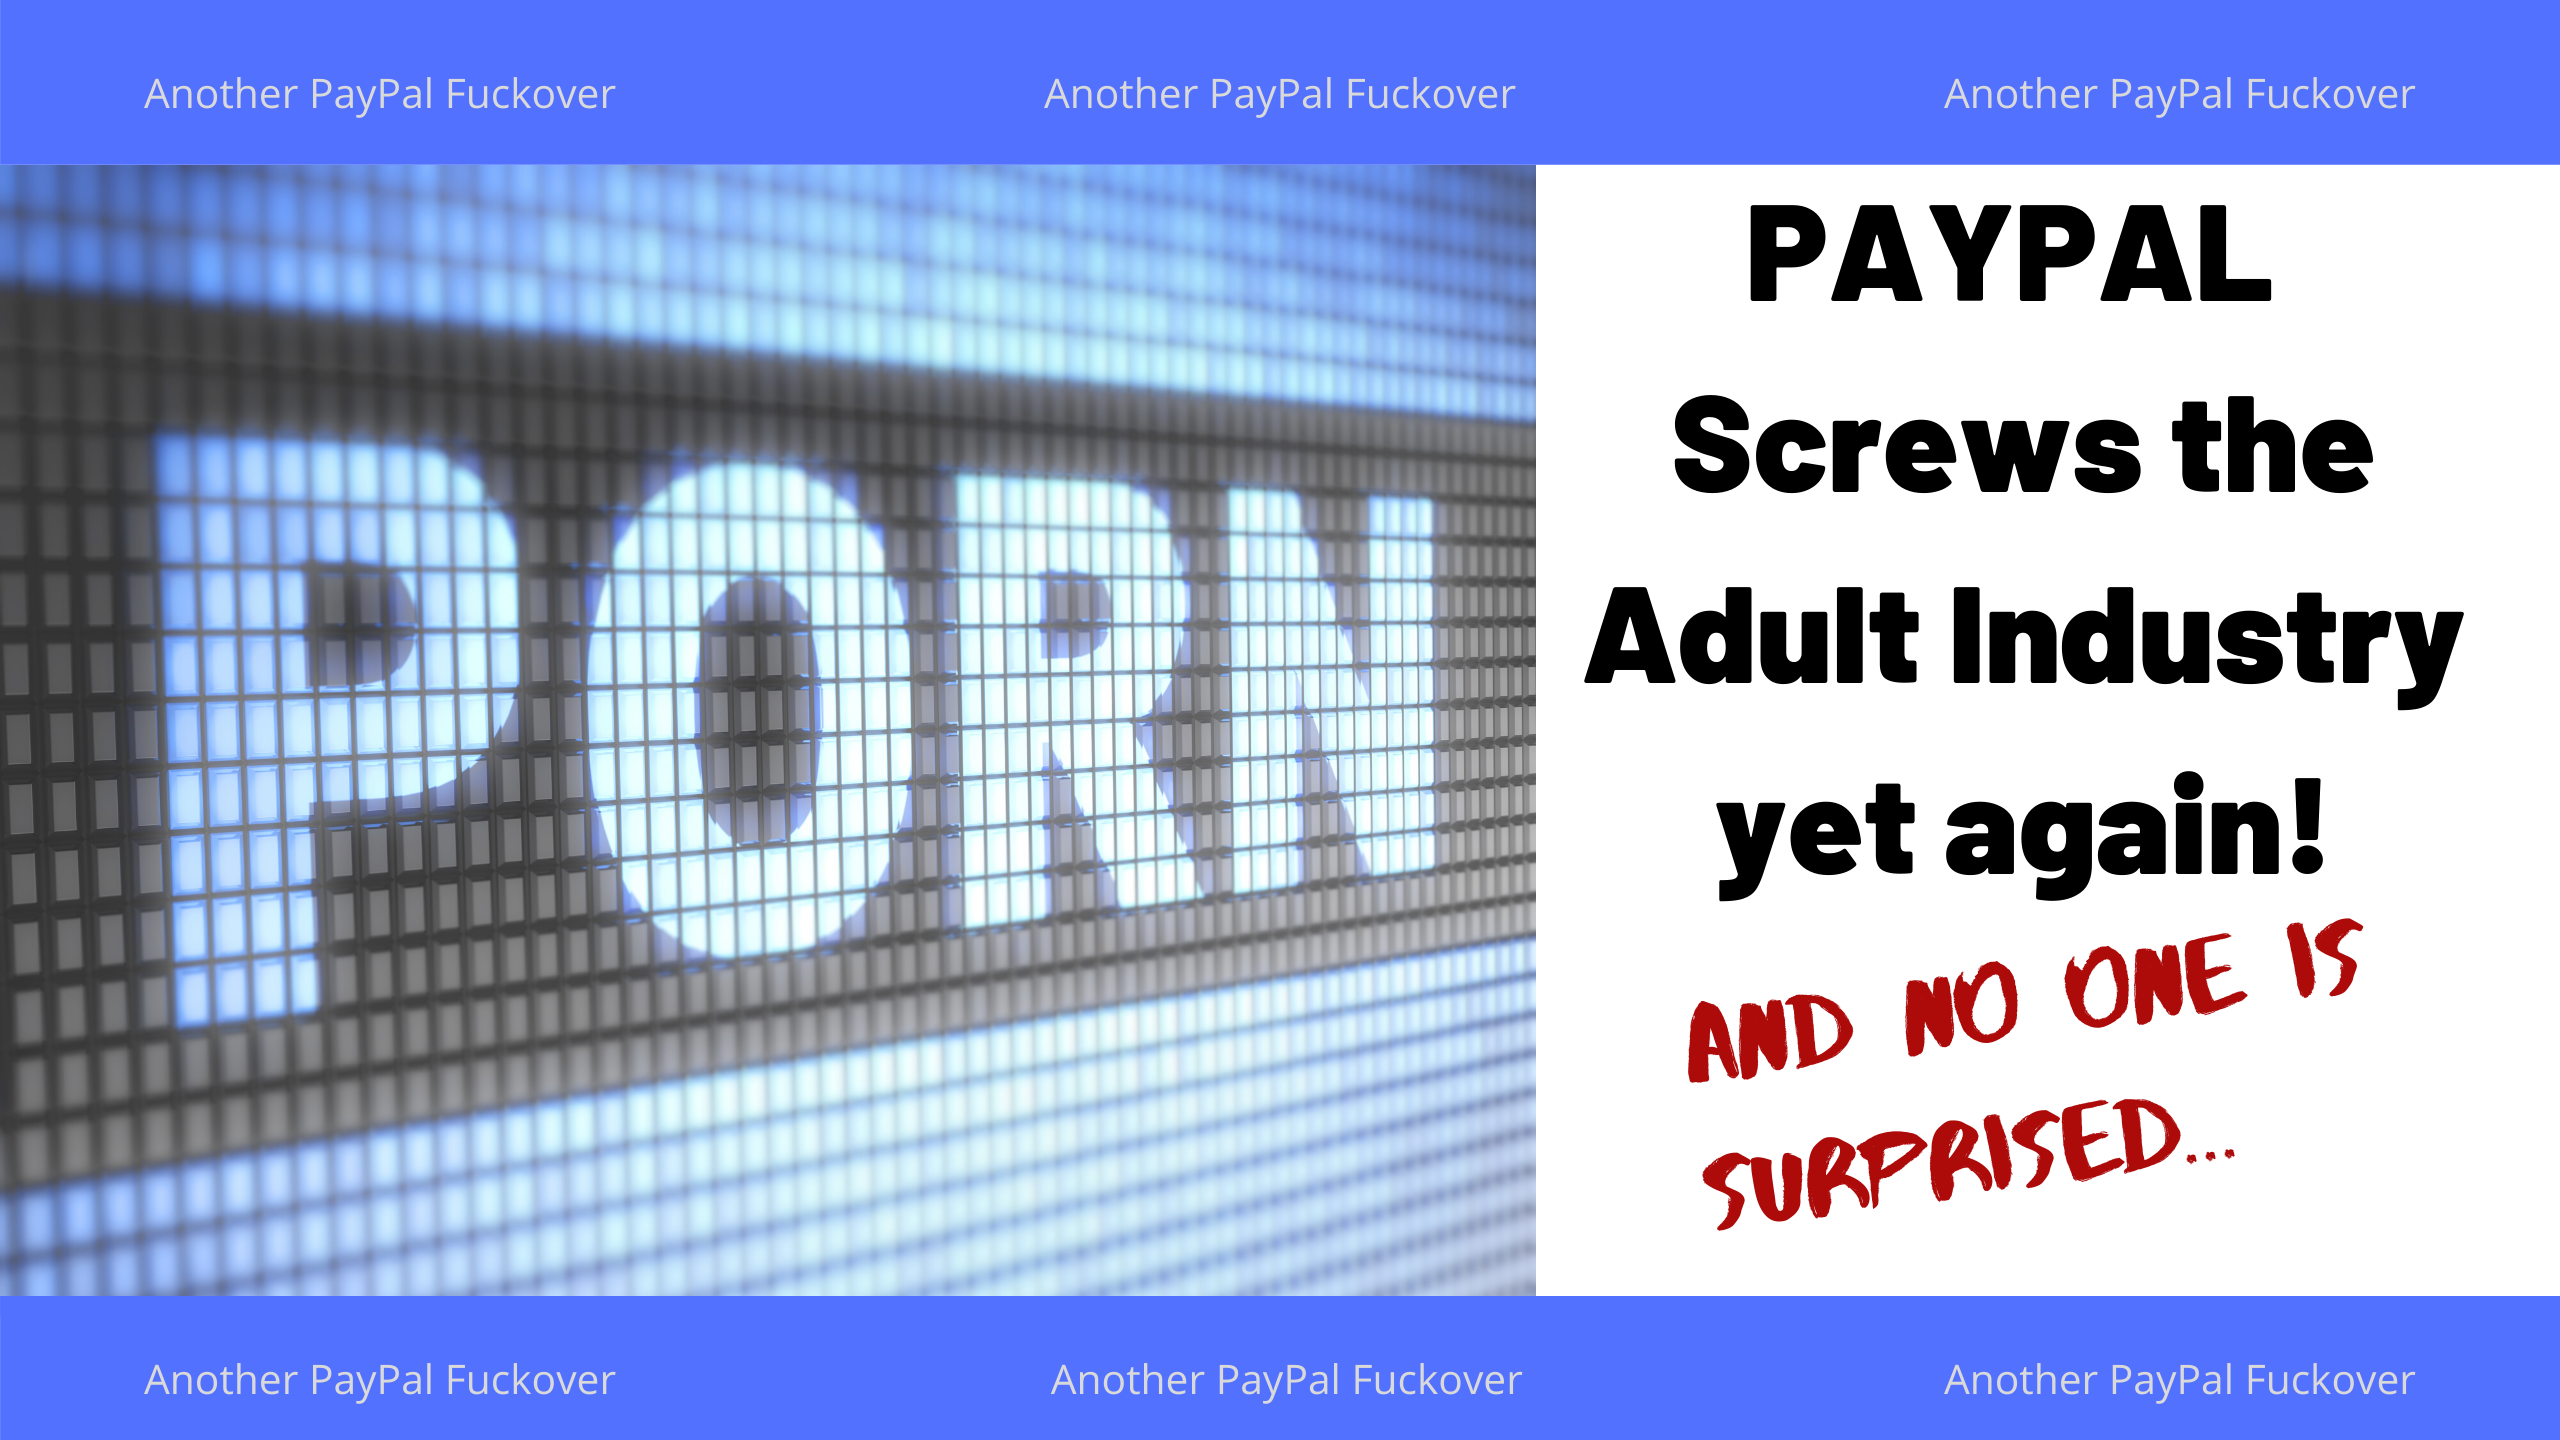 paypal screws over the sex work industry yet again